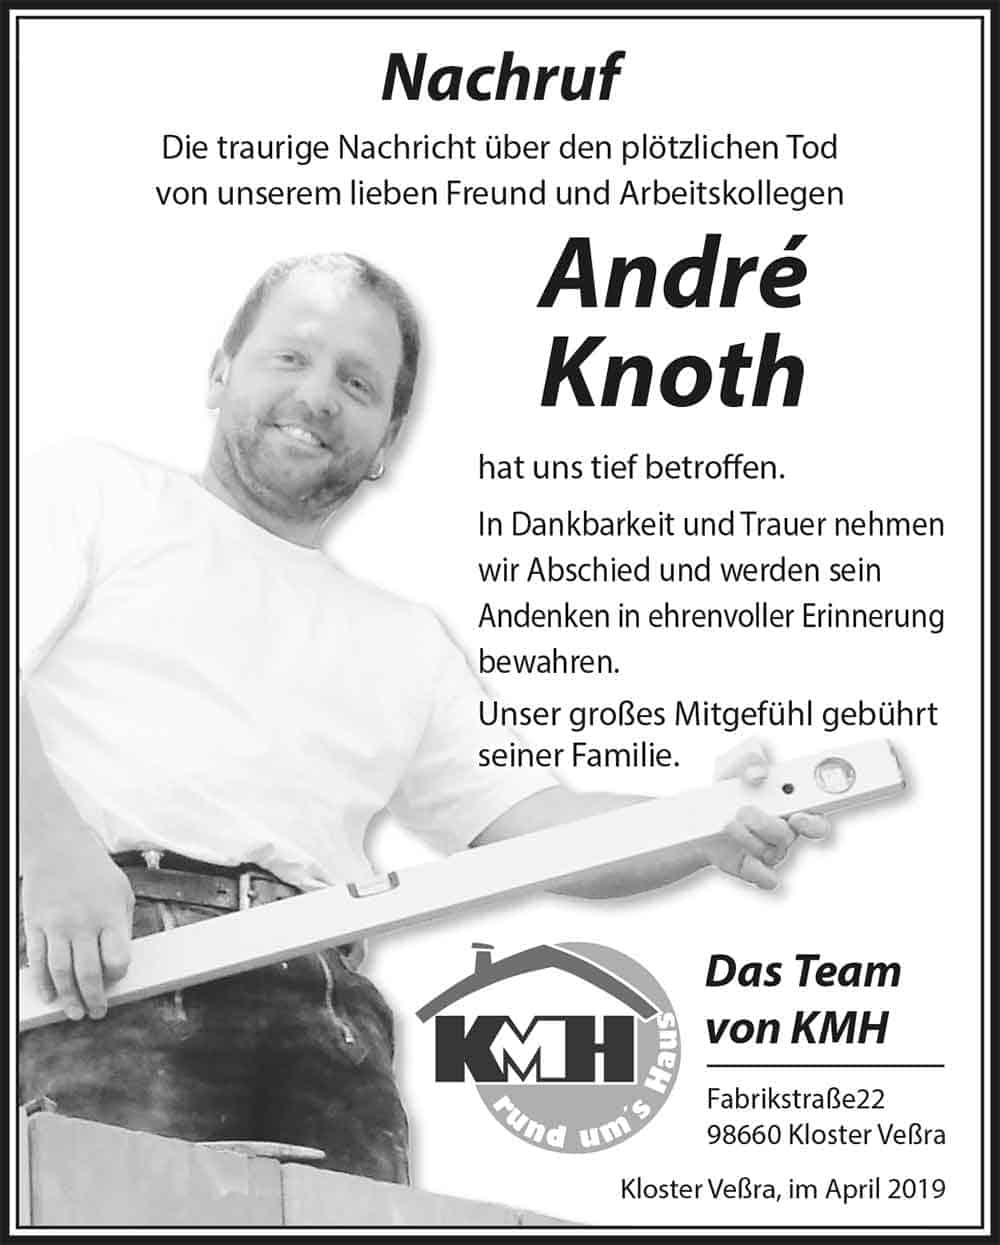 Nachruf_Andre_Knoth